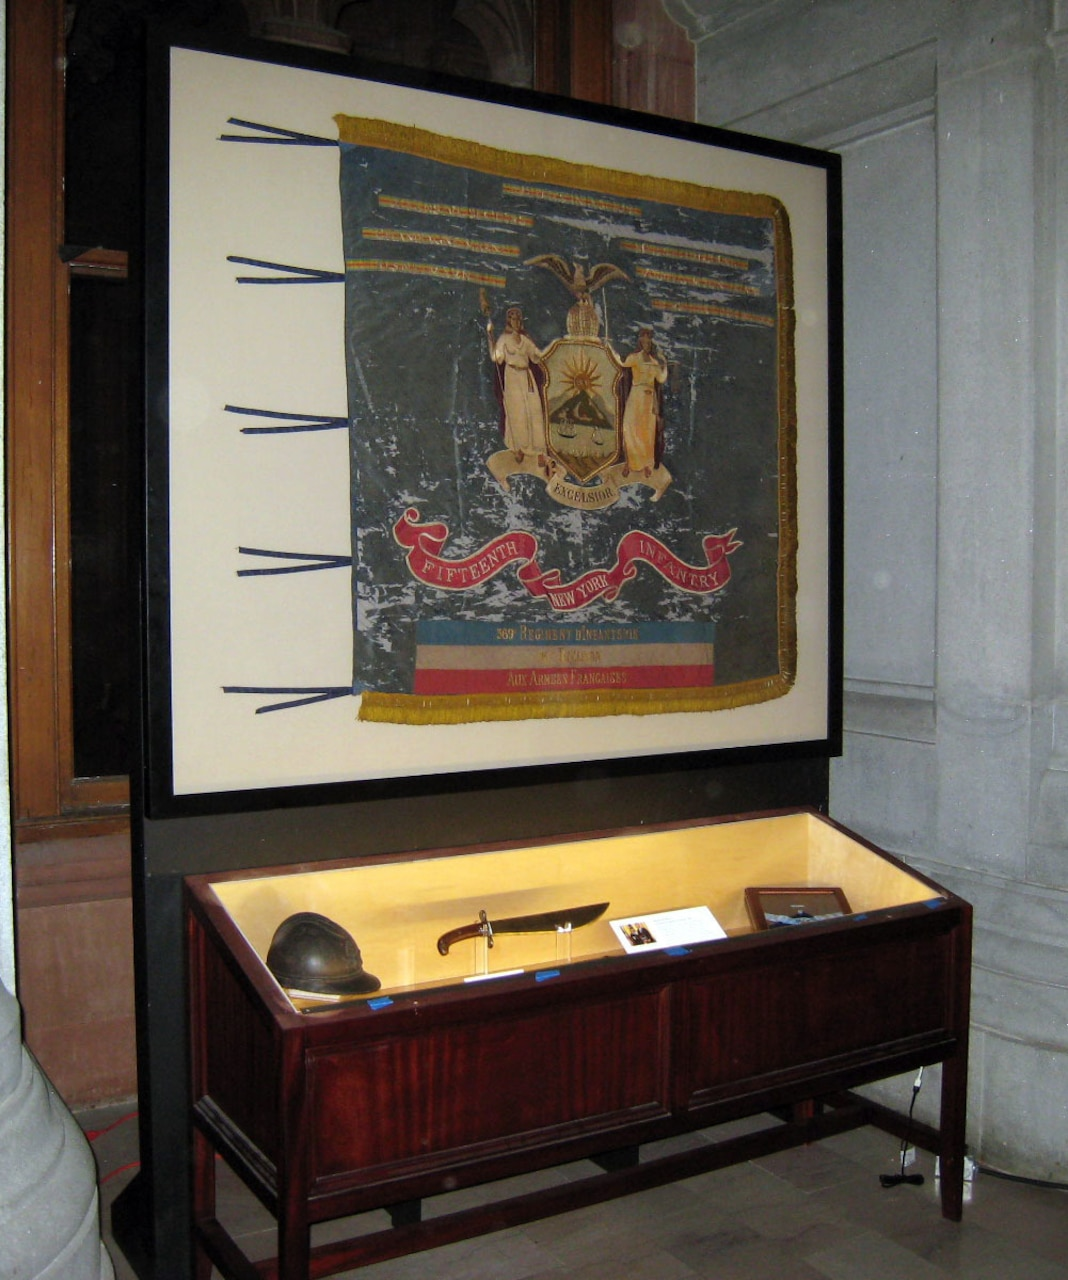 A museum display case holds artifacts.